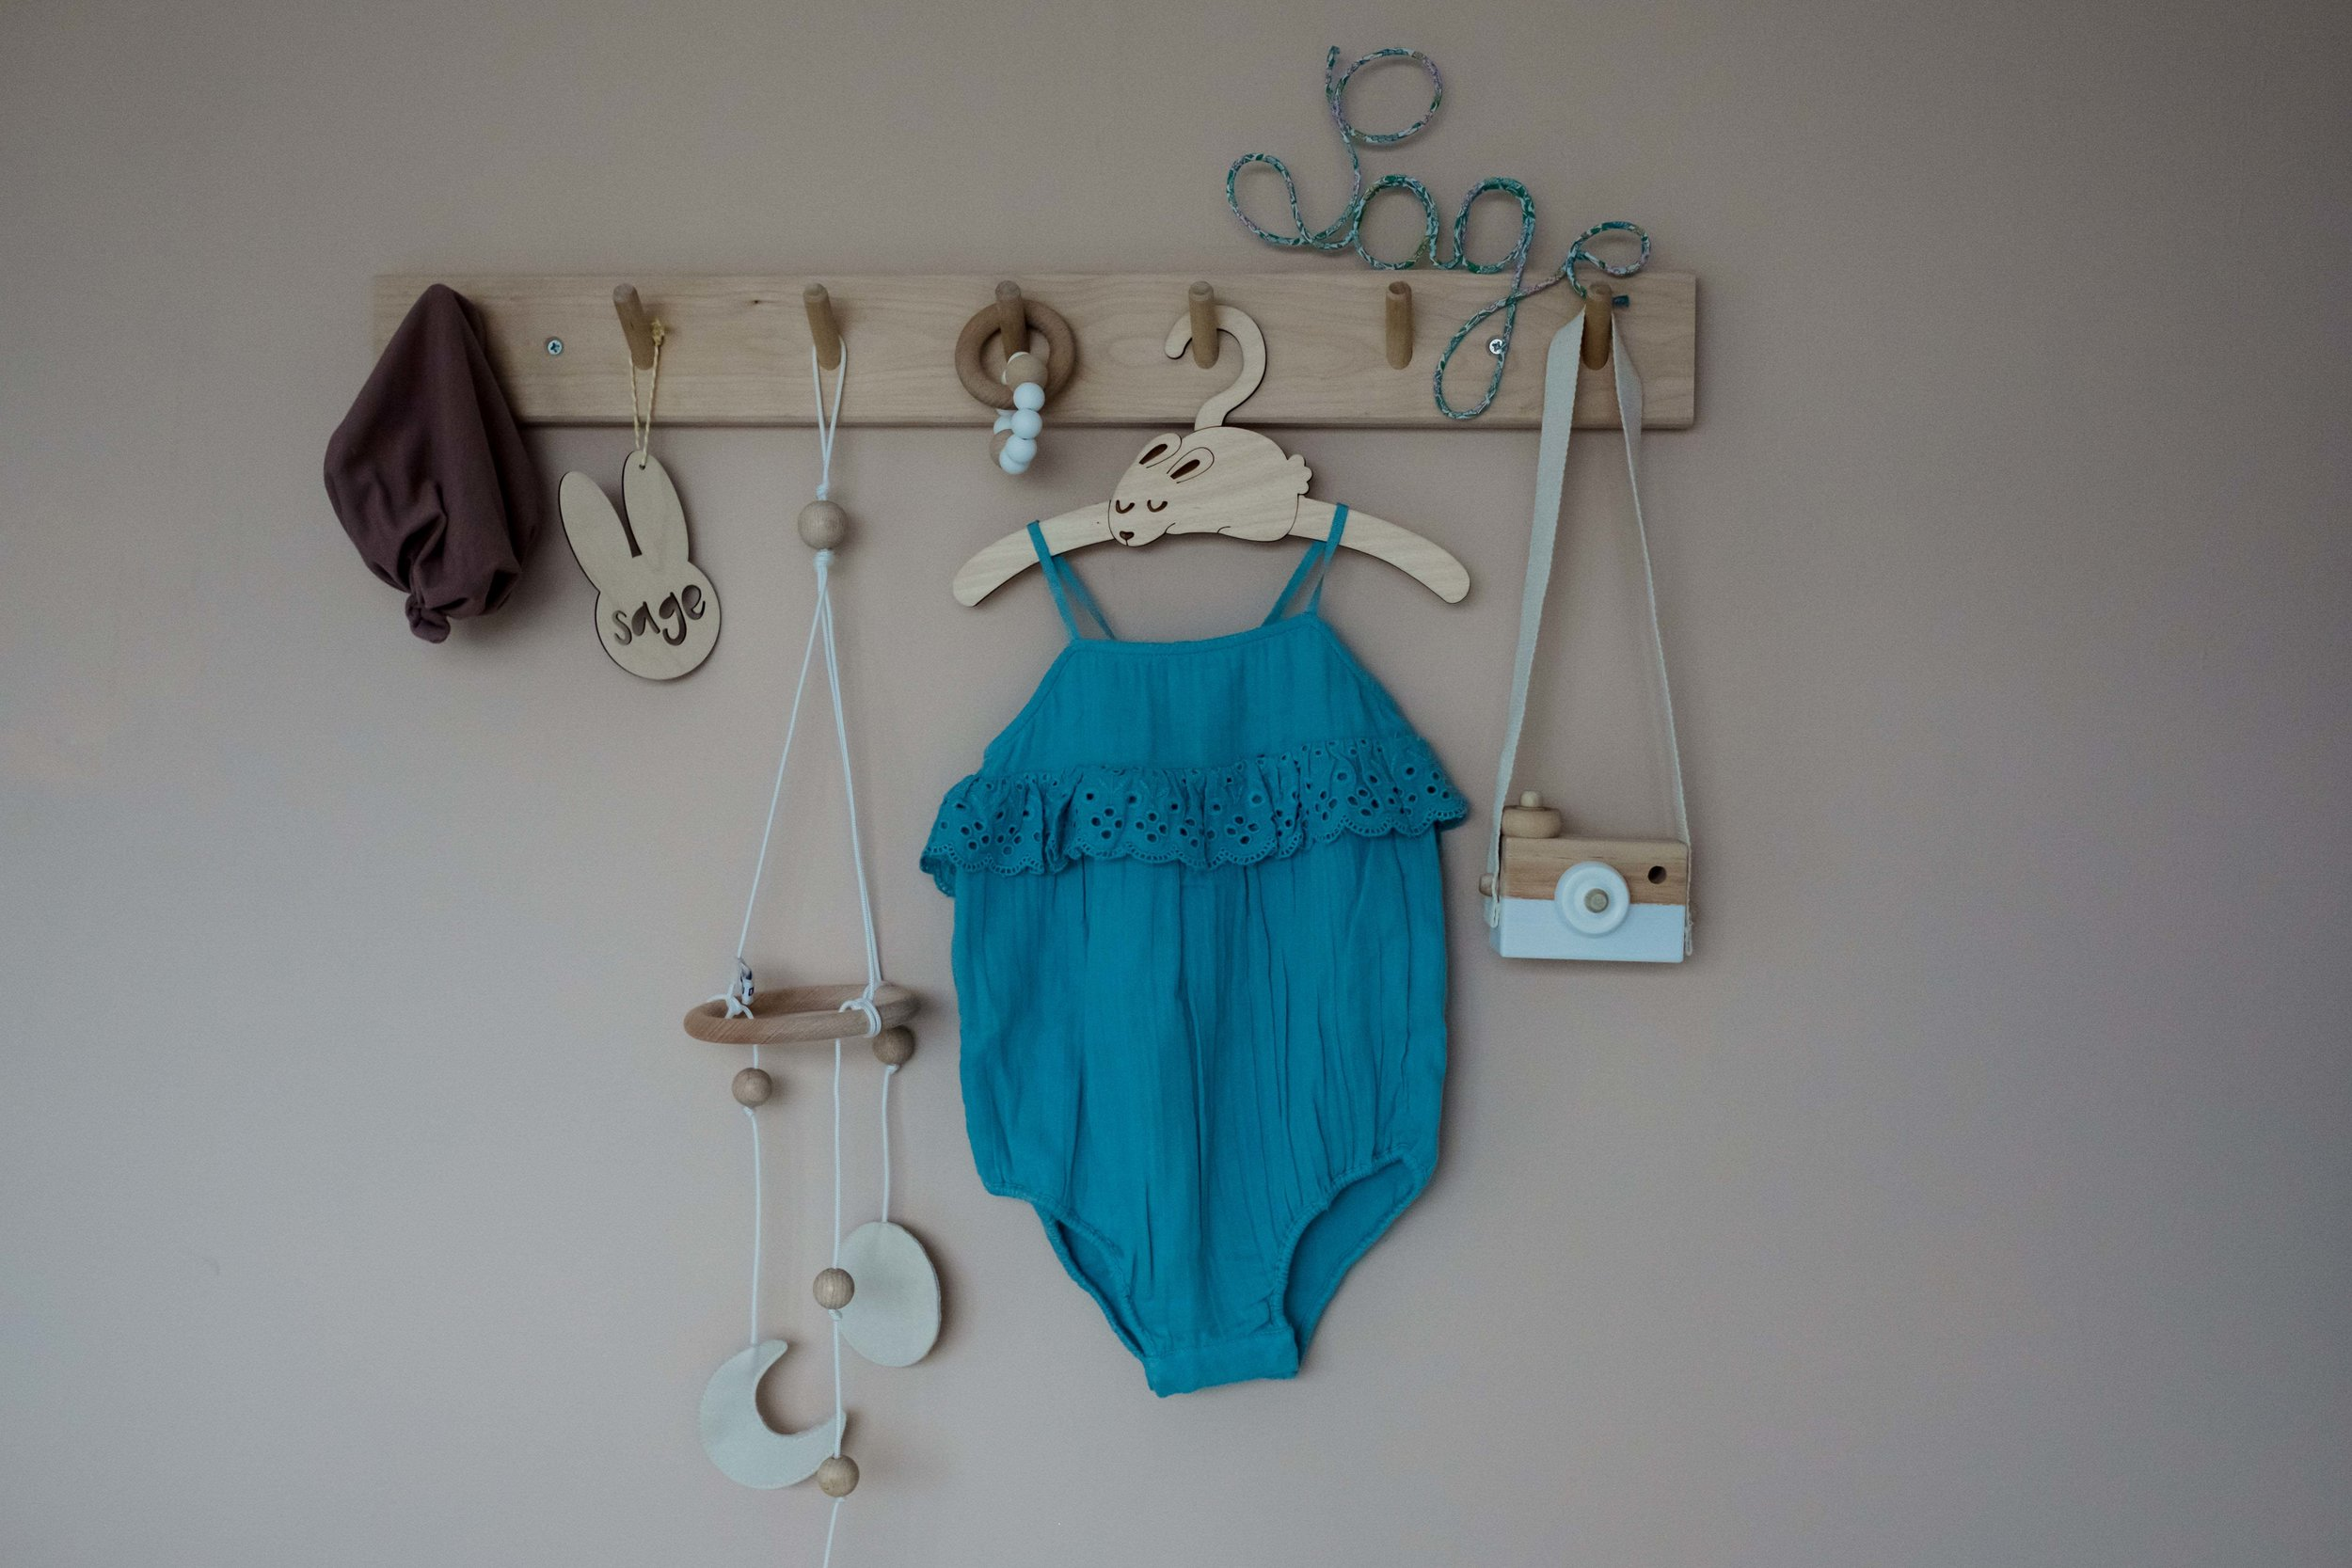 baby girl's clothes are hanging on wall